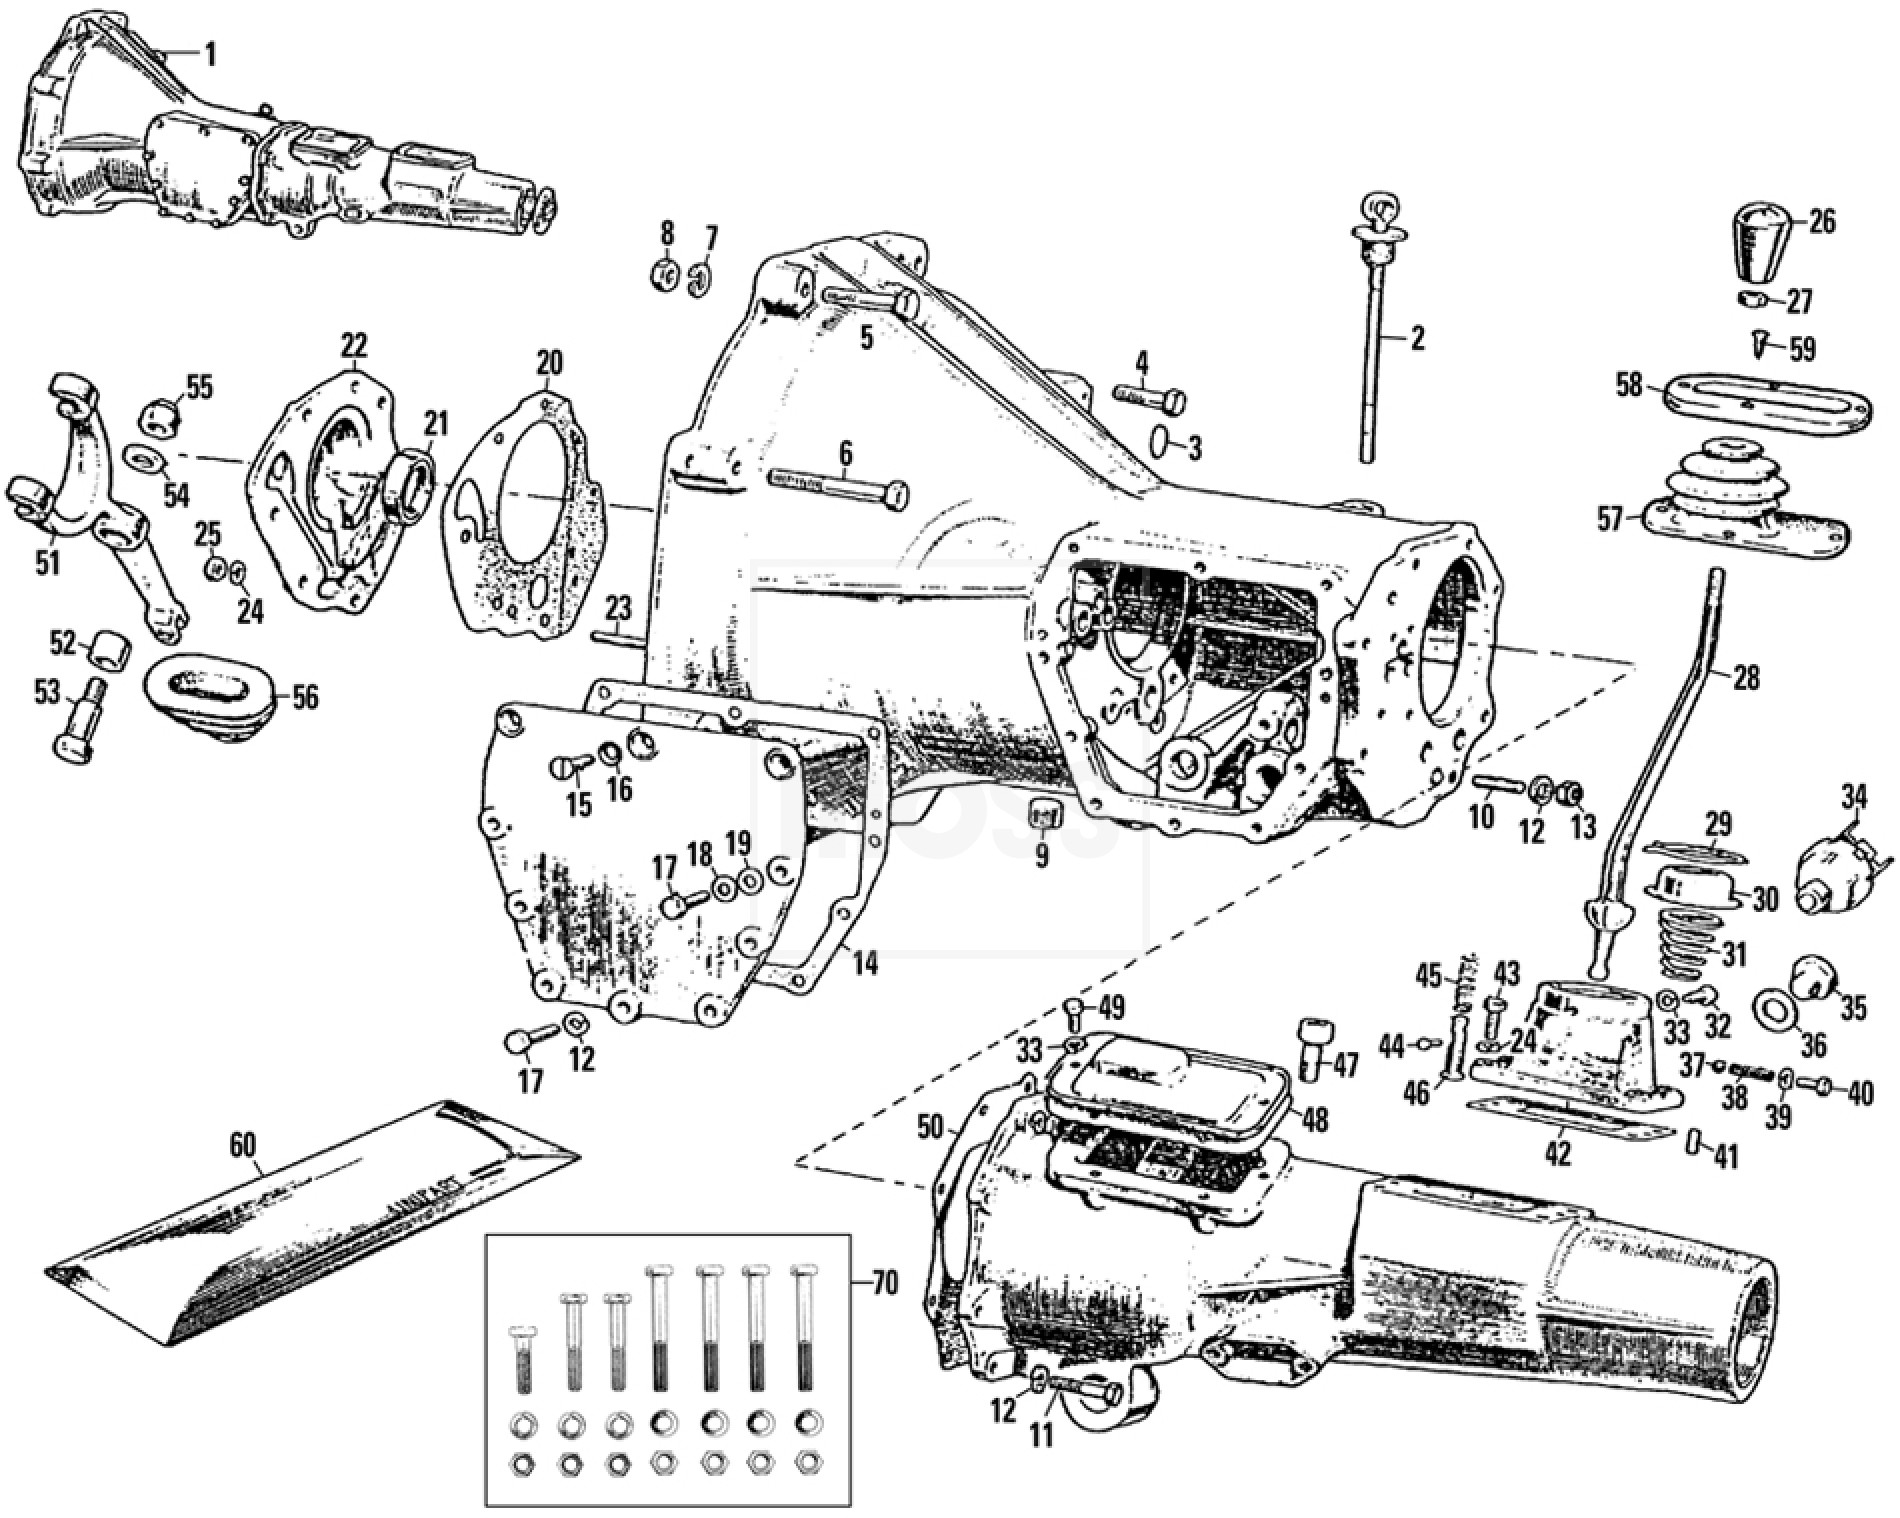 Mgb Transmission Diagram Opinions About Wiring Chevy 460 External Gearbox 3 Synchro Non Overdrive Mounts 5 Speed Conversion Kit